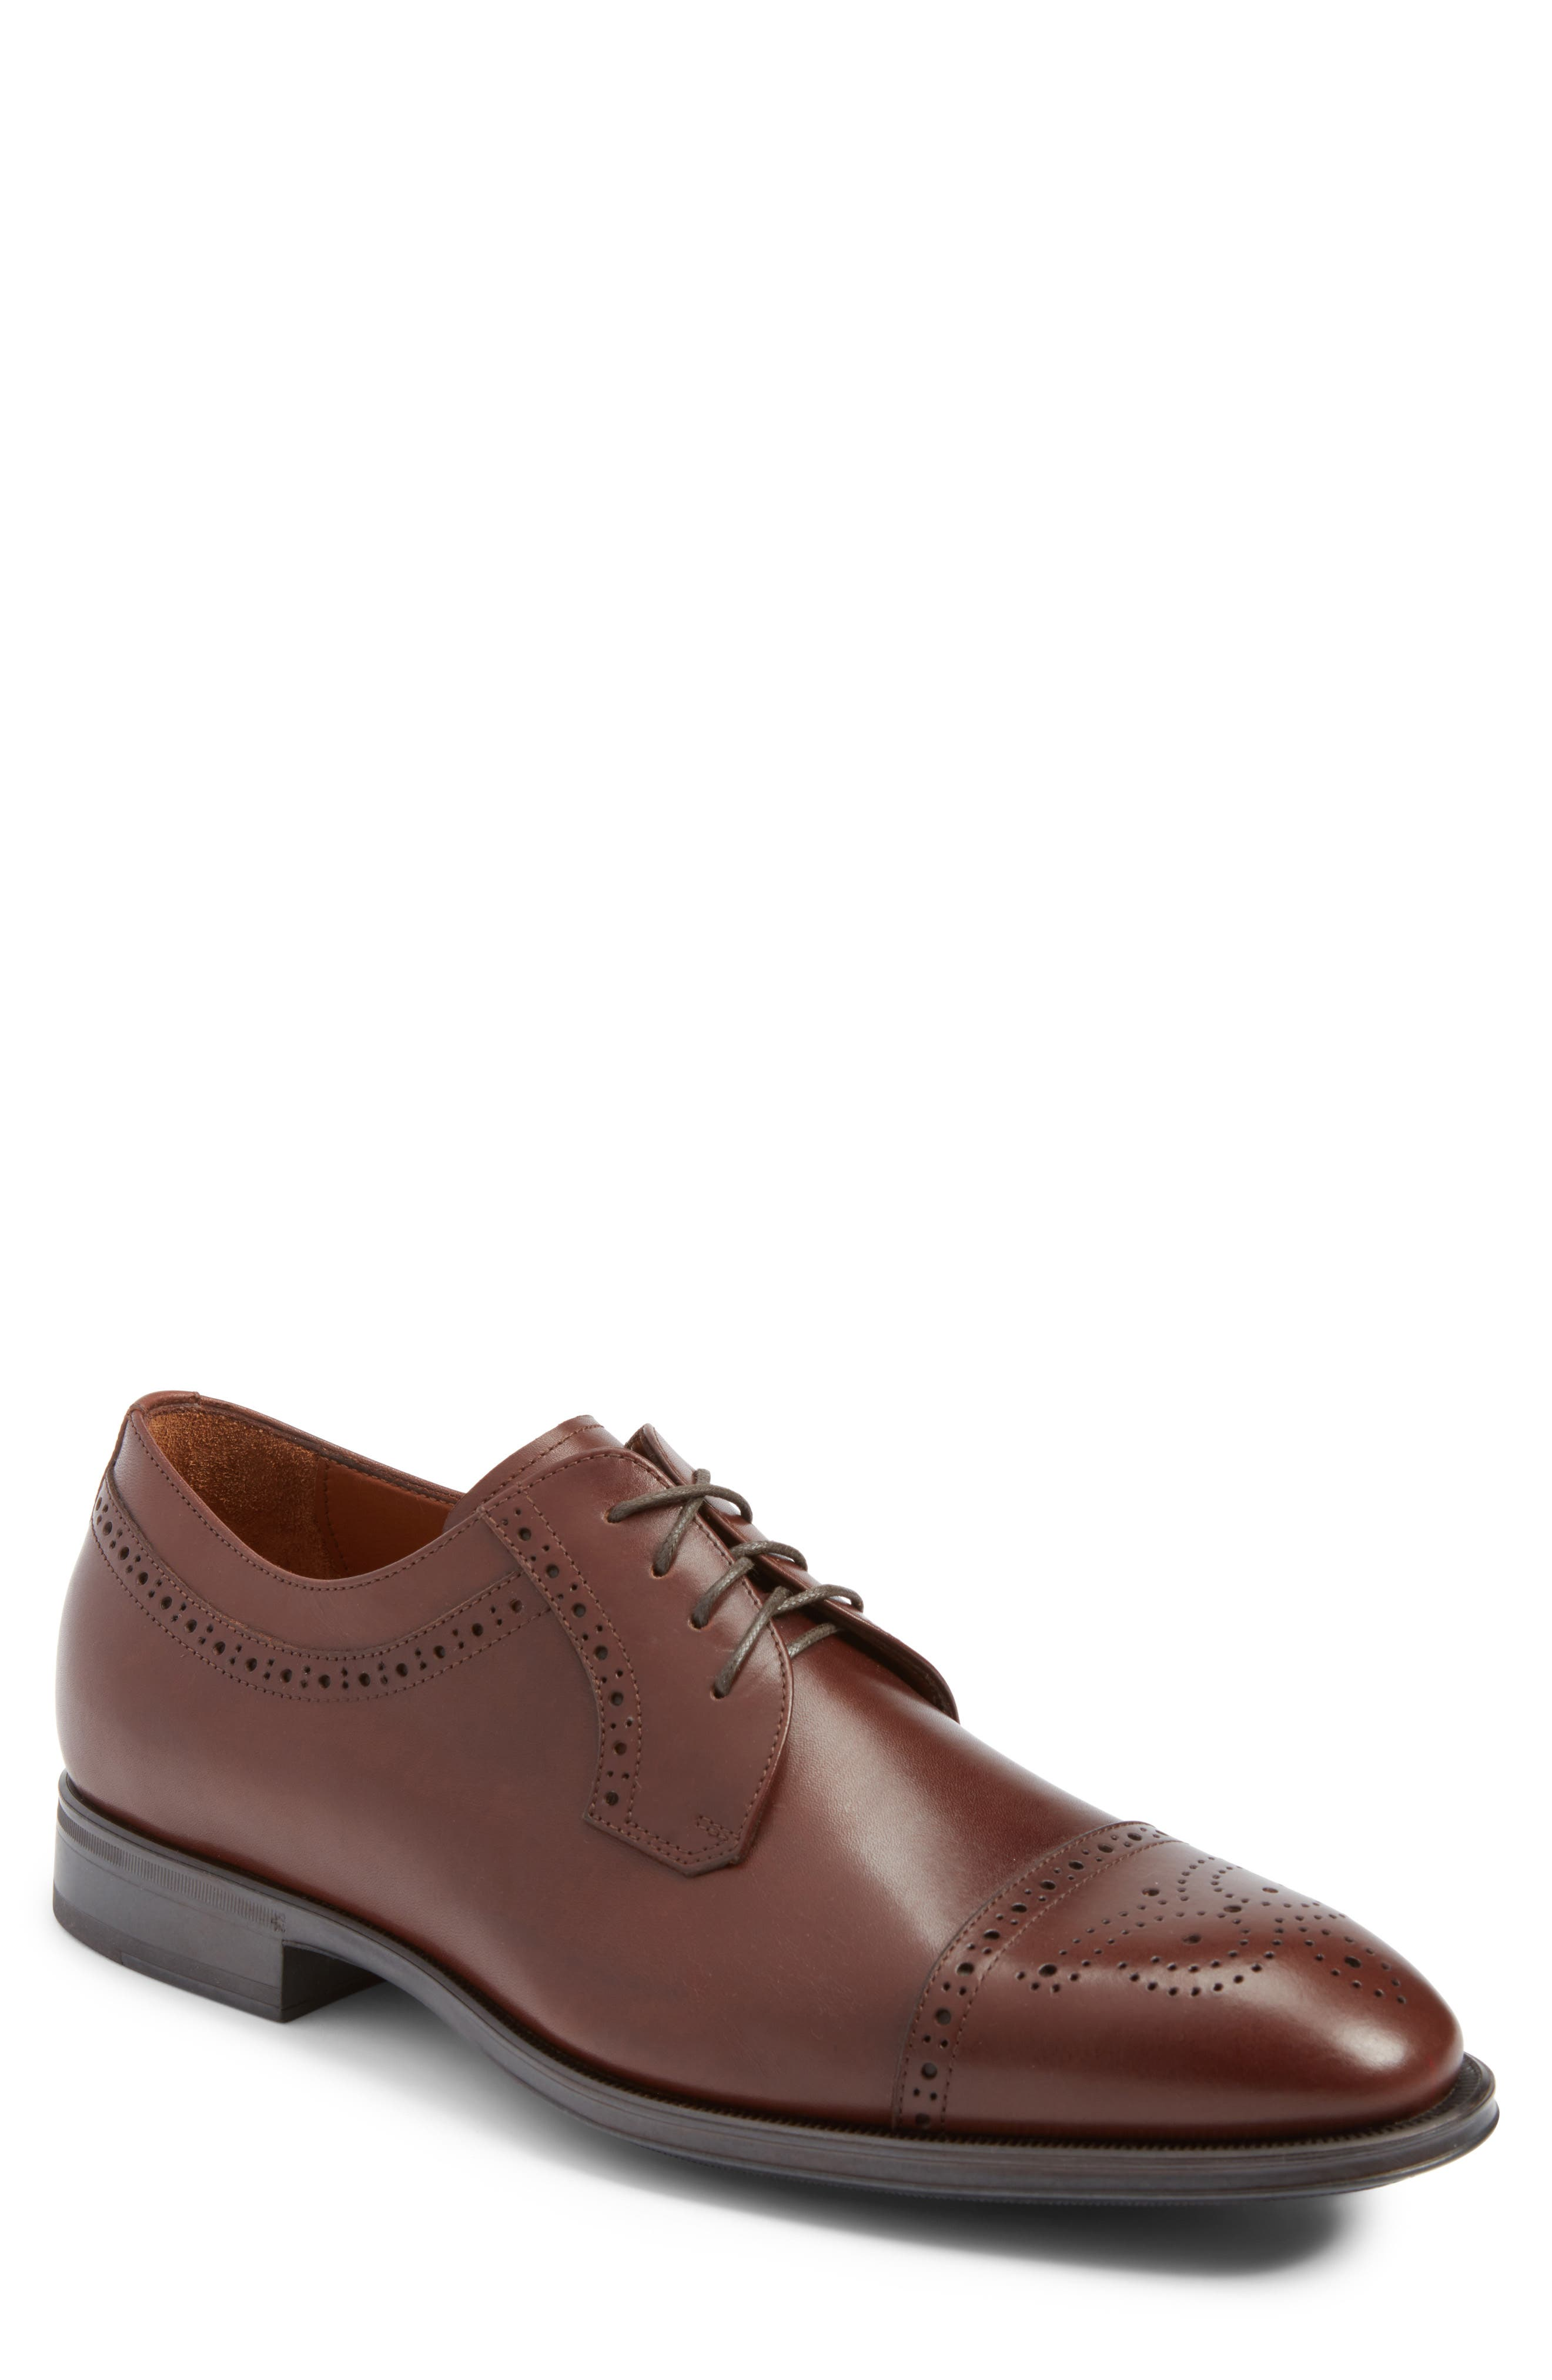 Duke Medallion Toe Derby,                             Main thumbnail 1, color,                             Burnished Cognac Leather